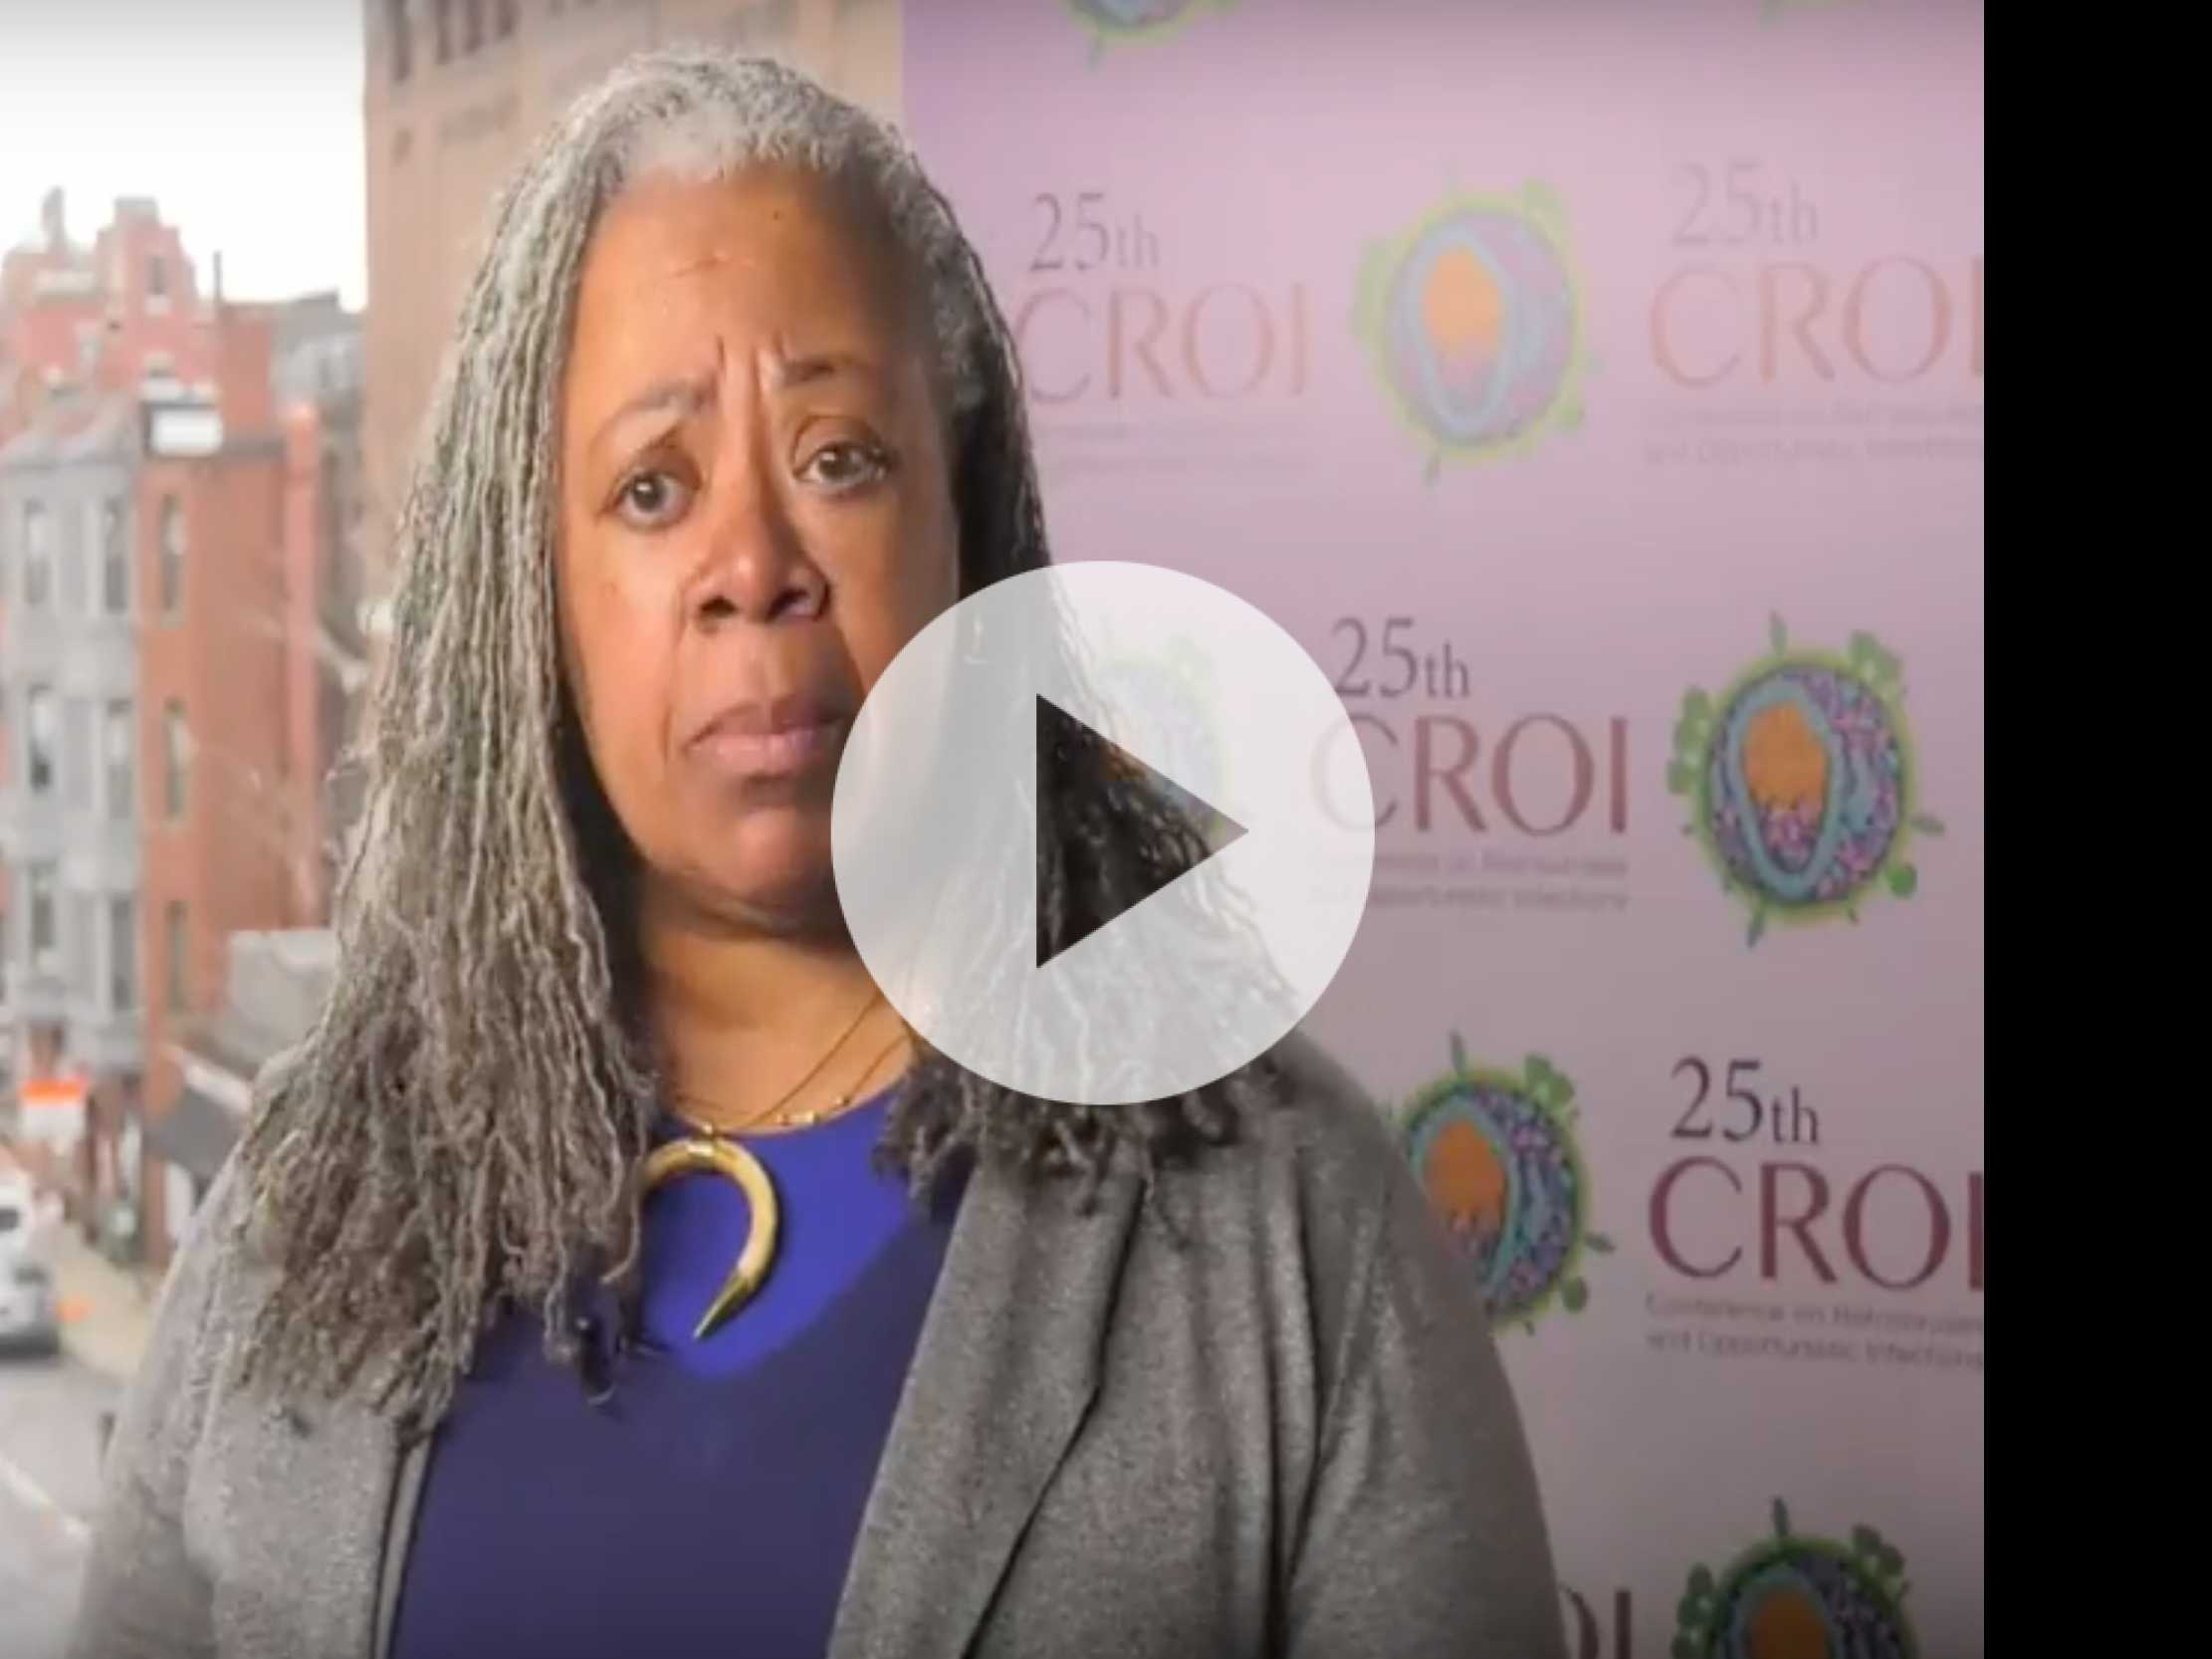 CROI Research Highlights on Women & HIV